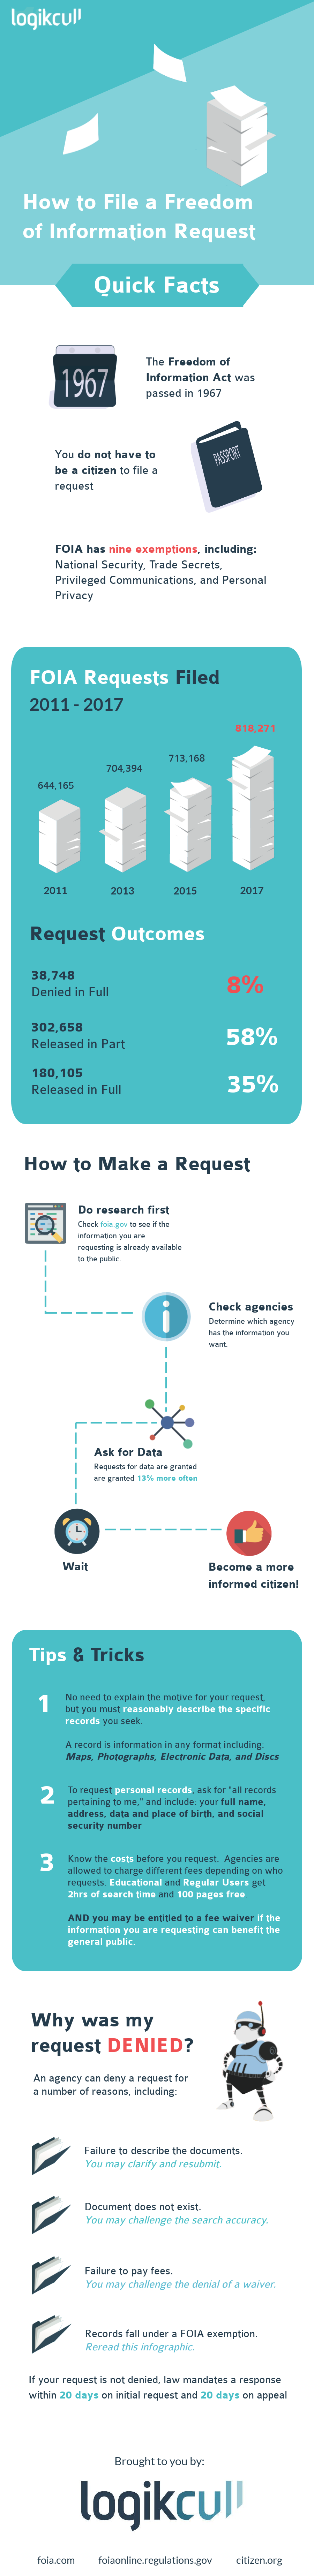 Infographic showing how to file a FOIA request and related statistics